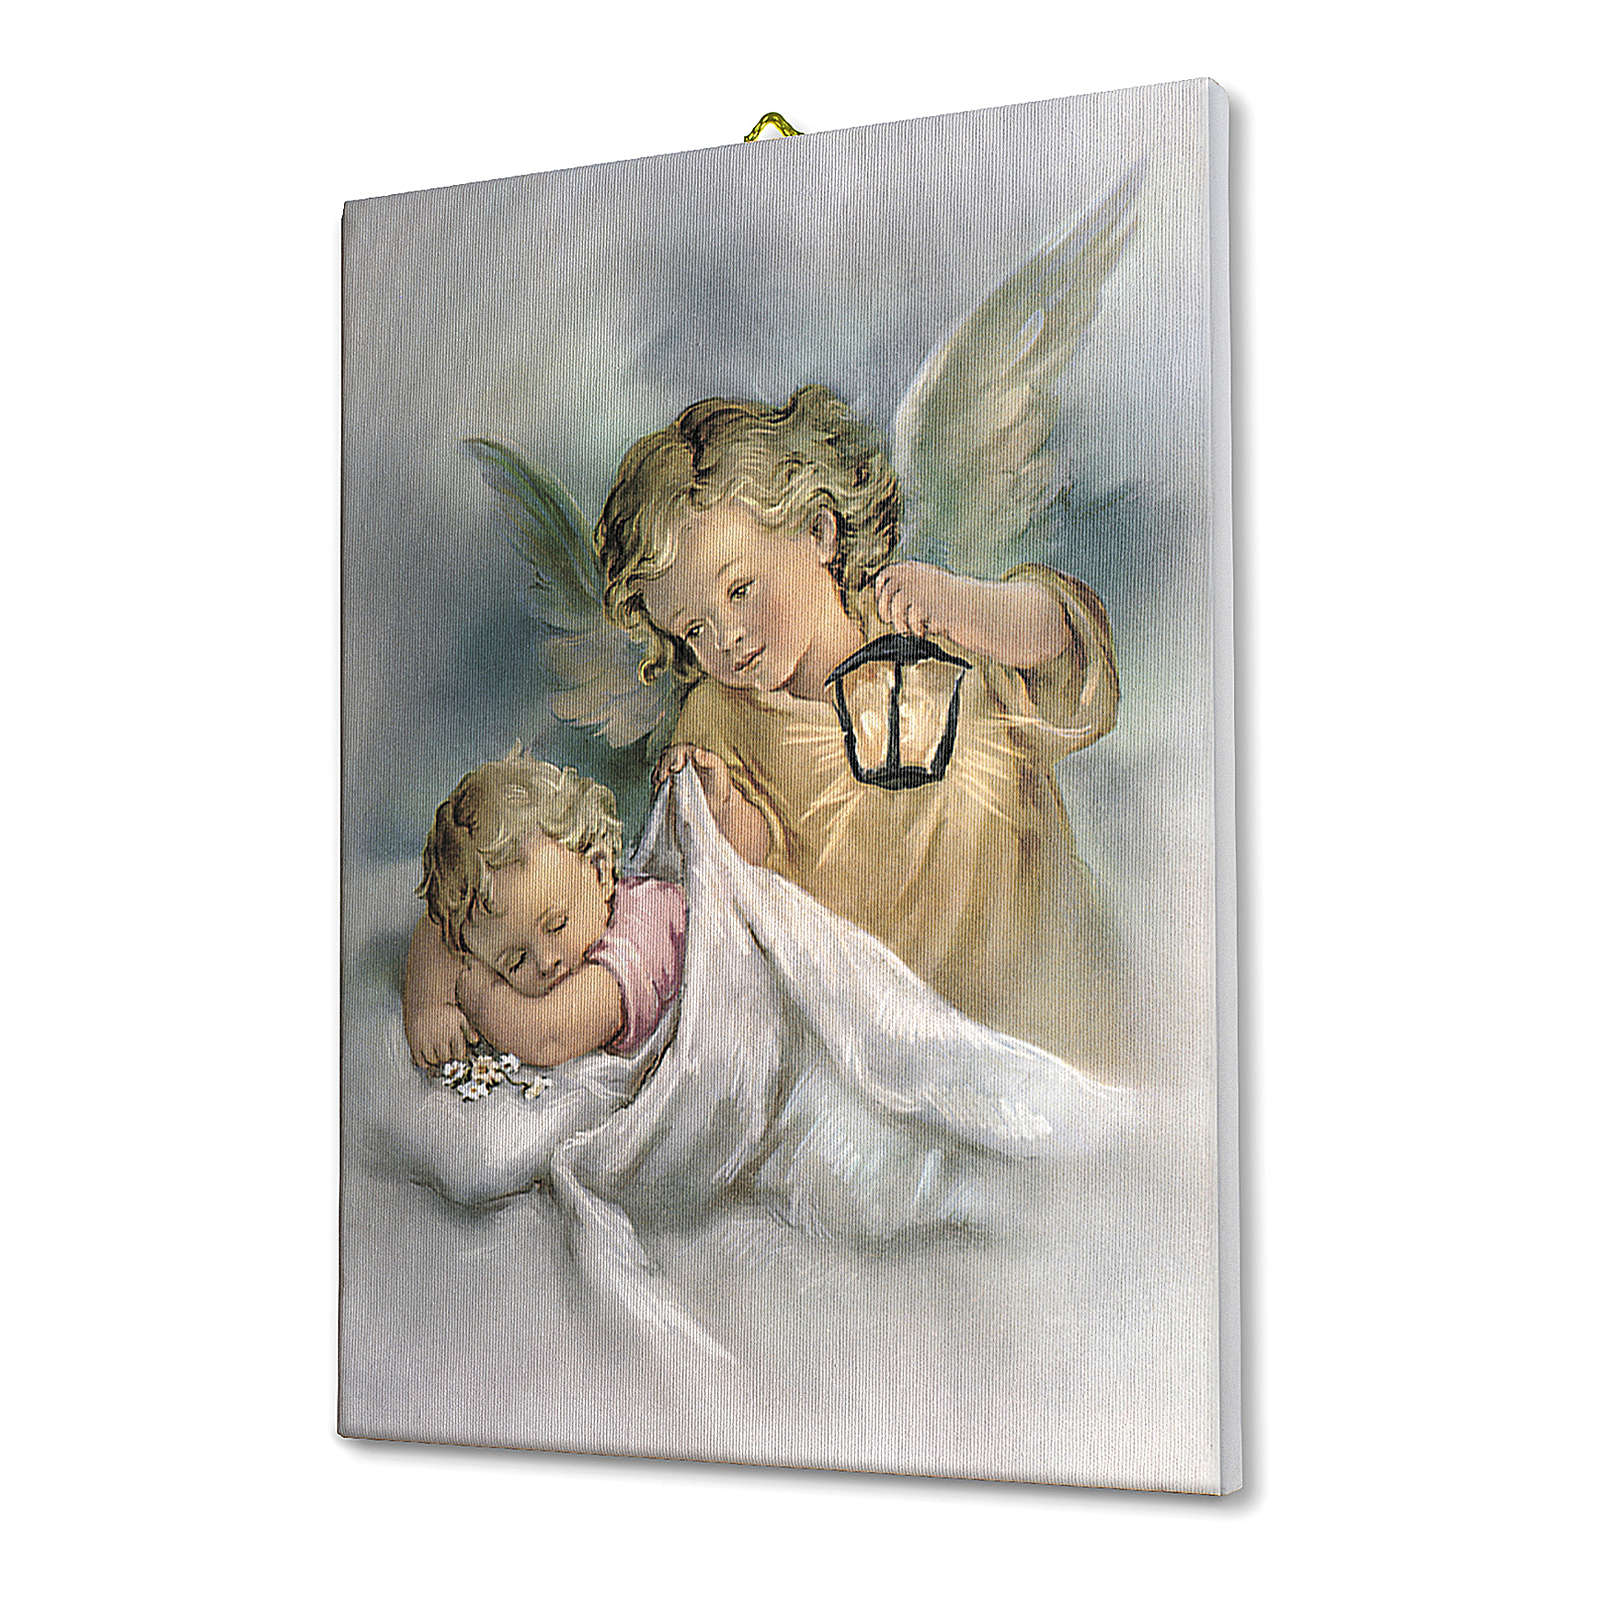 Print on canvas Guardian Angel with lamp 40x30 cm 3